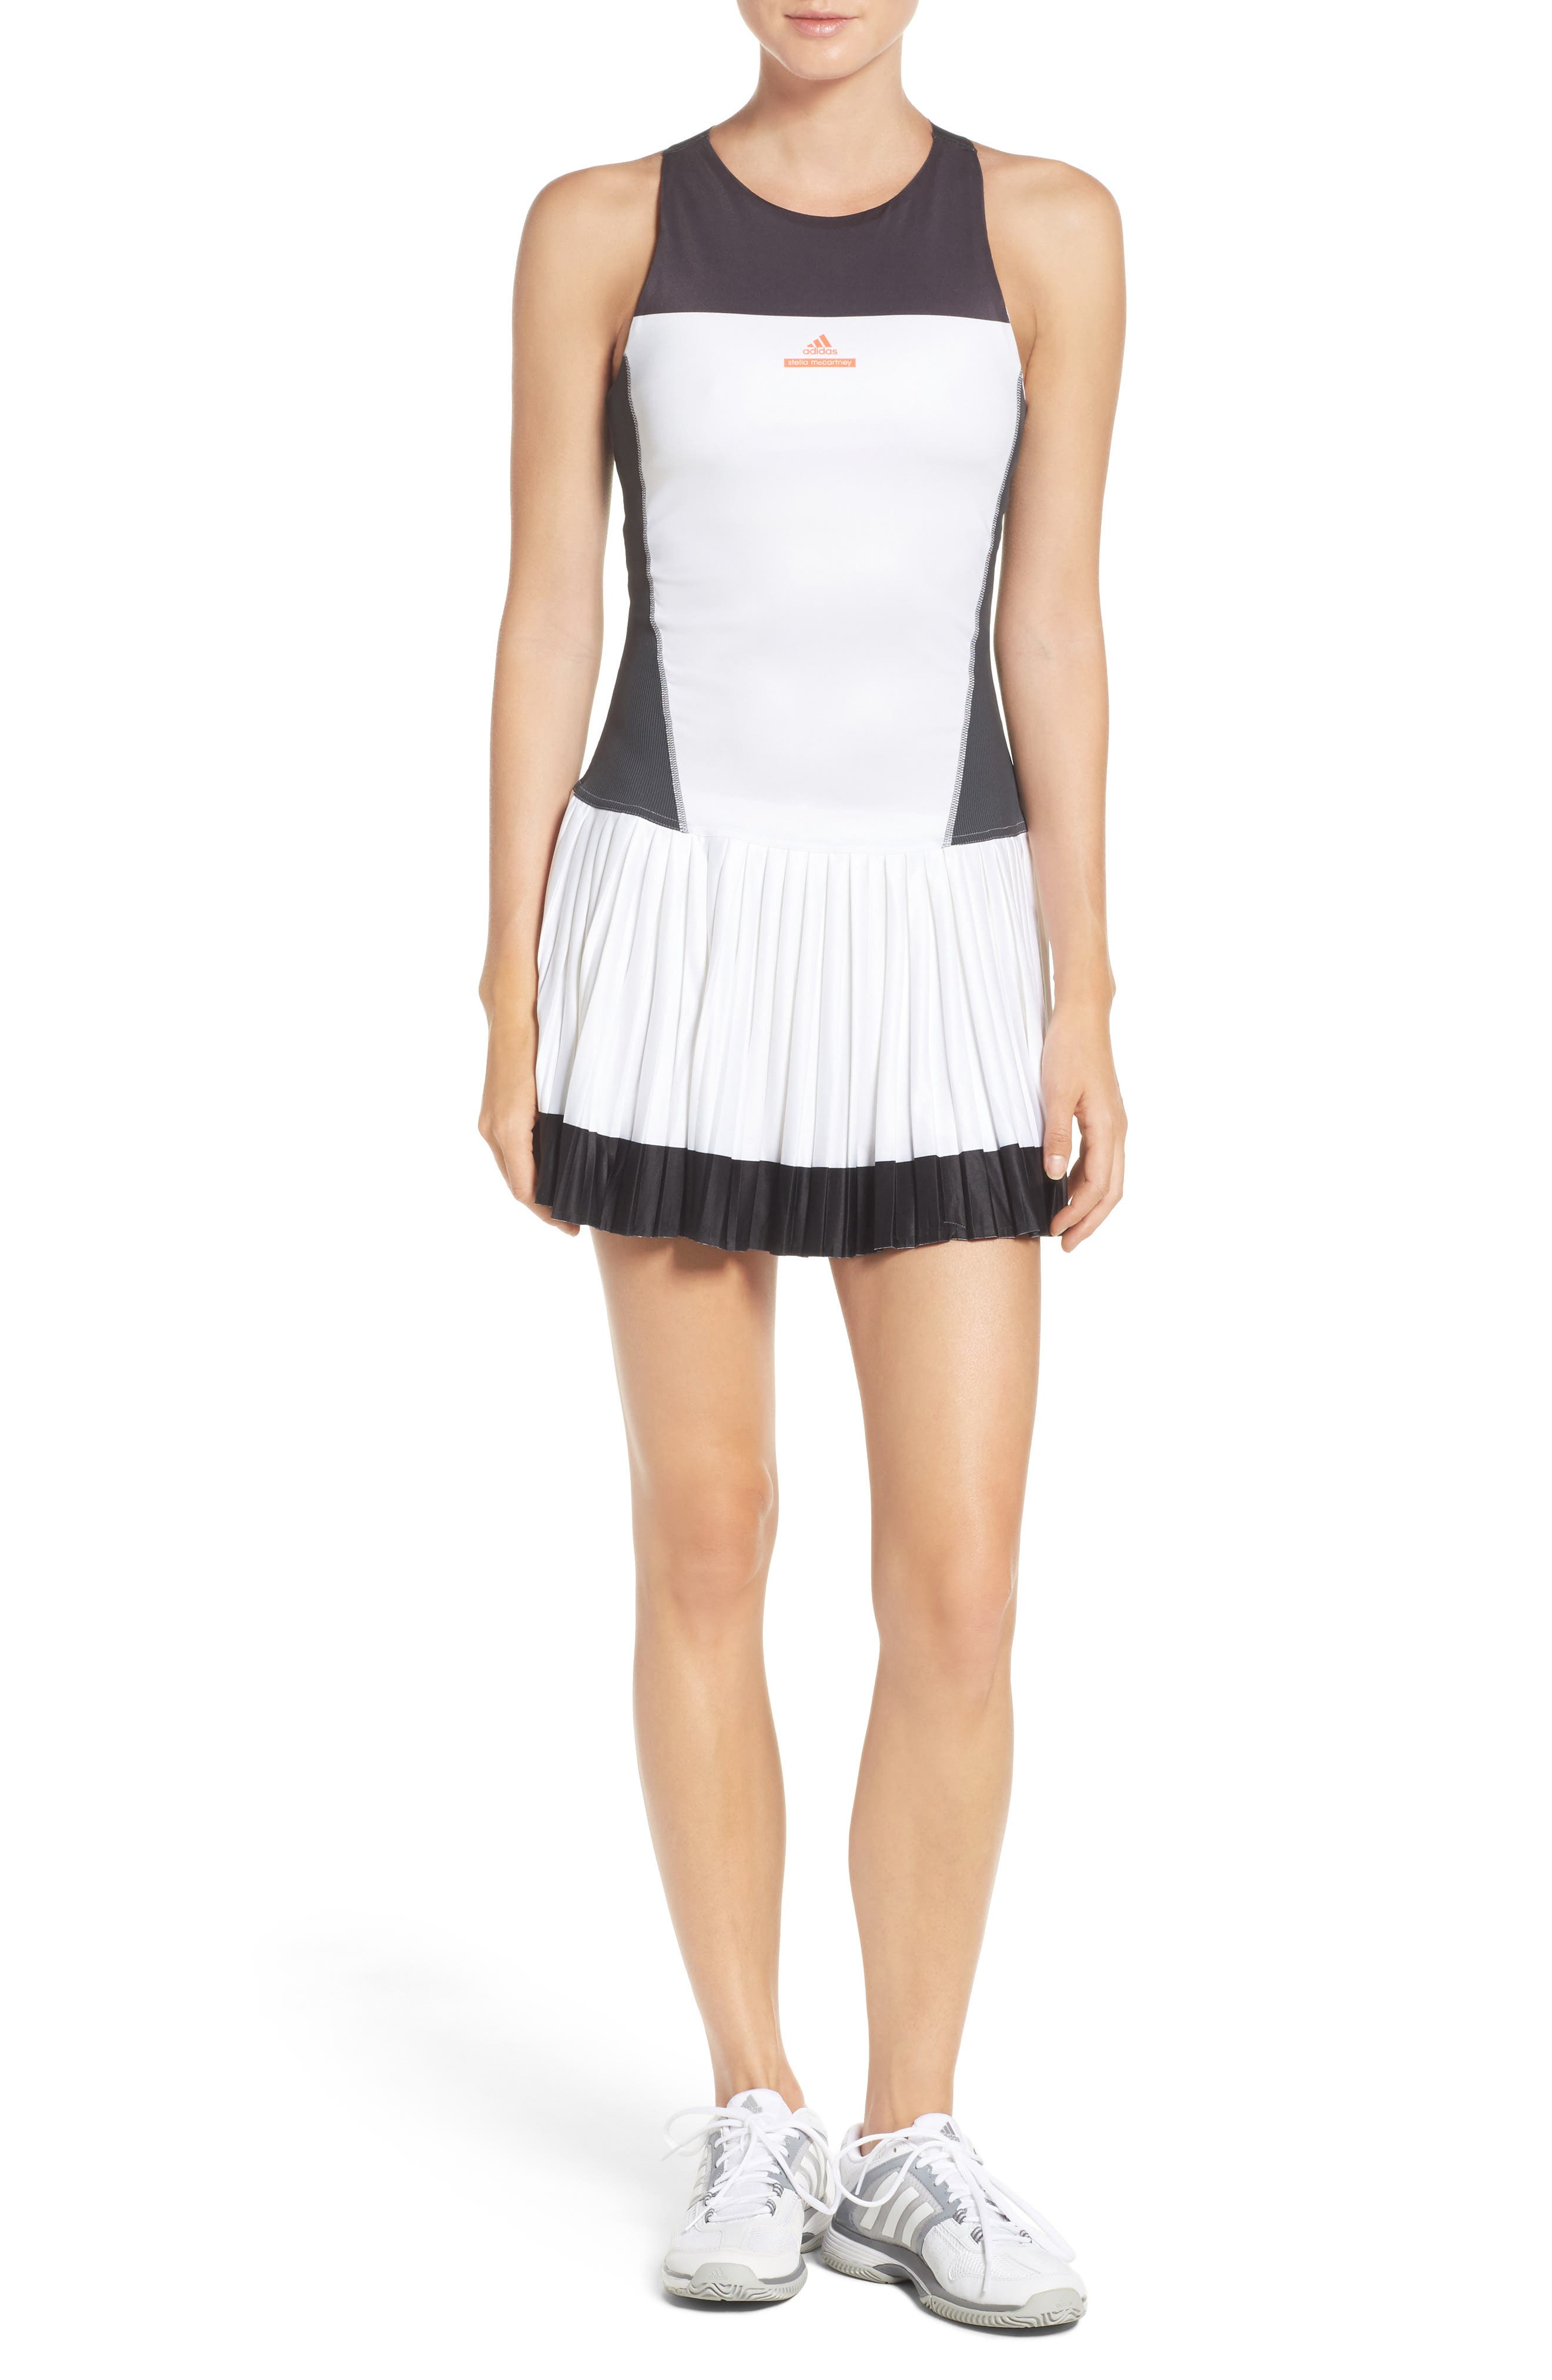 adidas by Stella McCartney Barricade Tennis Dress & Shorts Set